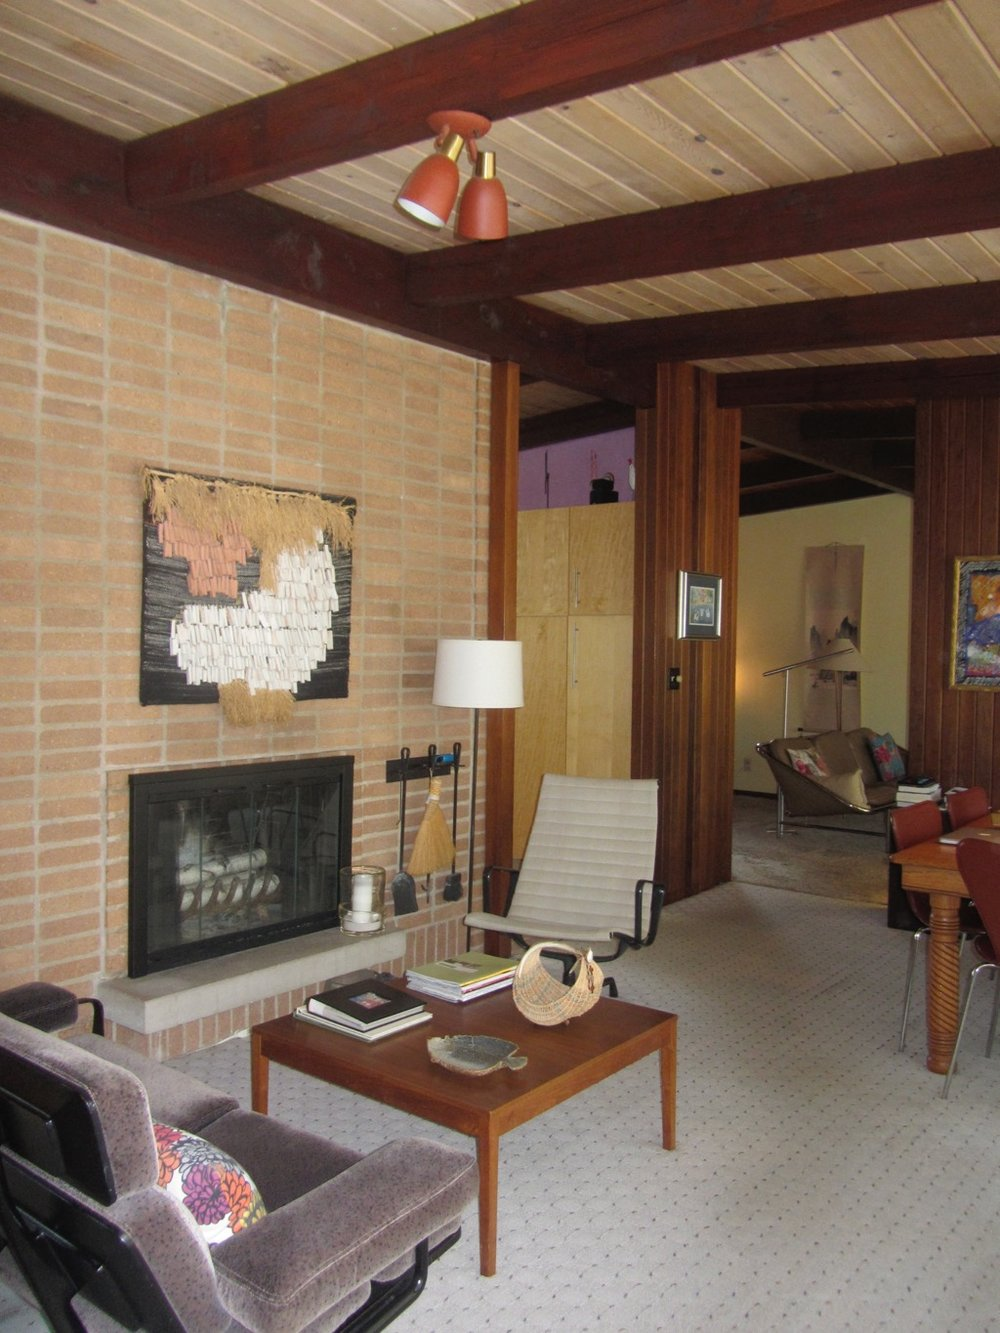 HORIZONTAL BRICK OF FIREPLACE WALL